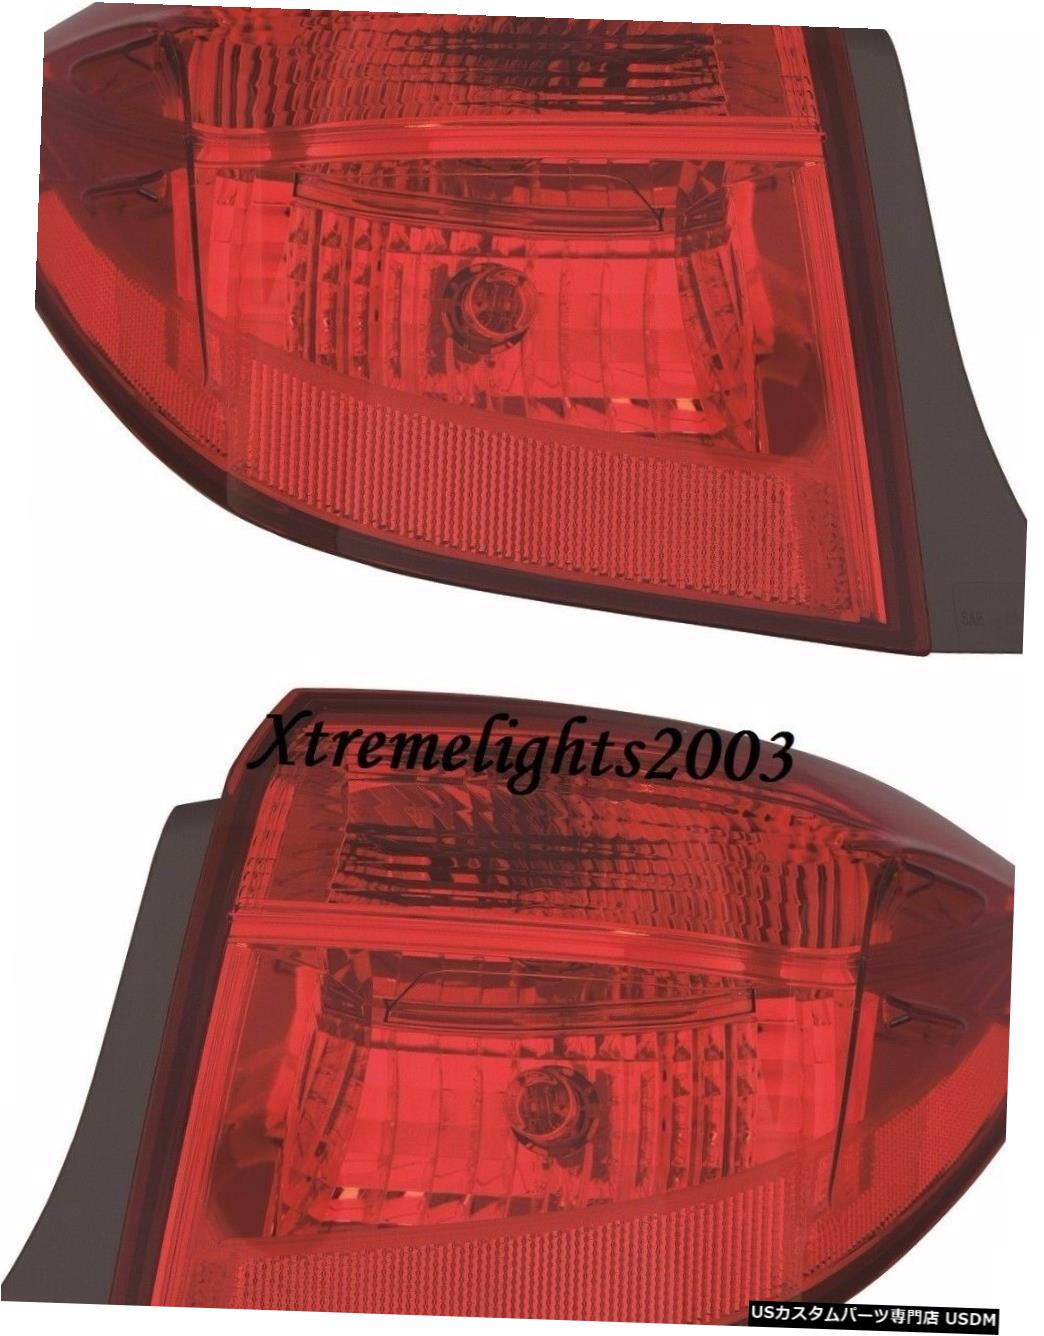 Tail light TOYOTA COROLLA 2017 SE XLE OUTER TAILLIGHTS REAR LAMPS TAIL LIGHTS PAIR SET TOYOTA COROLLA 2017 SE XLE OUTER TAILLIGHTS REAR LAMPS TAIL LIGHTS PAIR SET